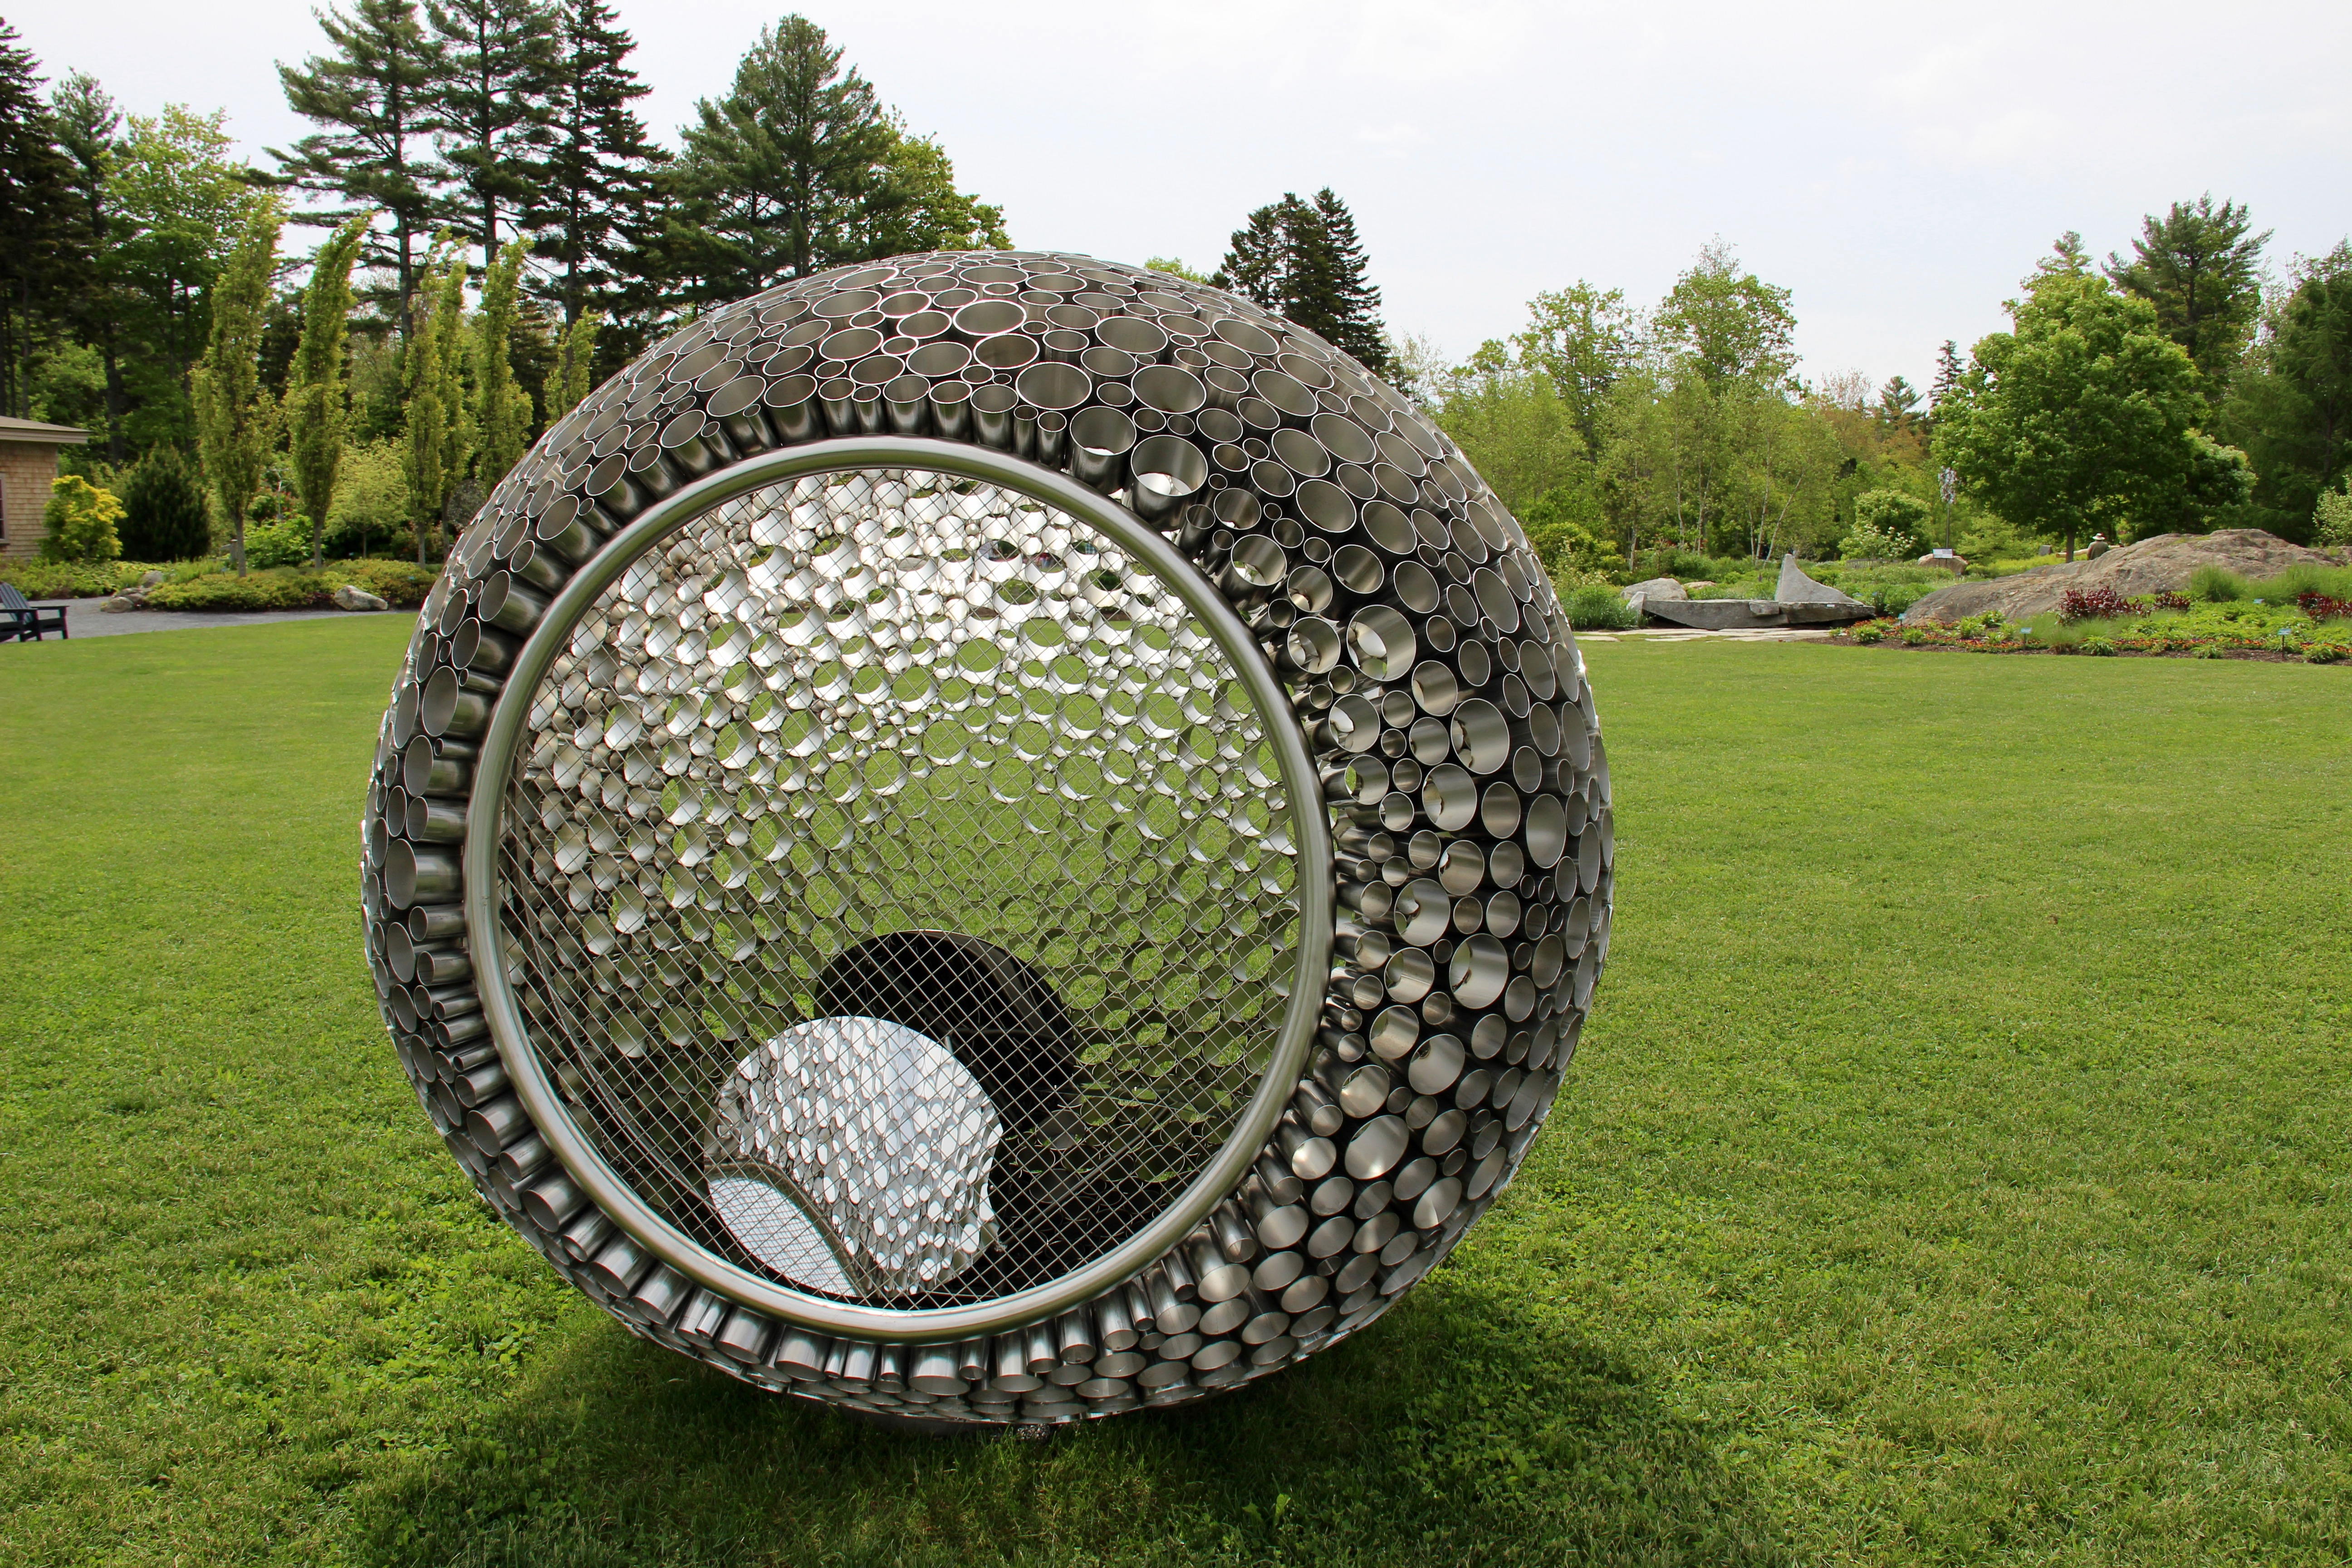 A silver orb sculpture from Wind, Waves and Light by George Sherwood